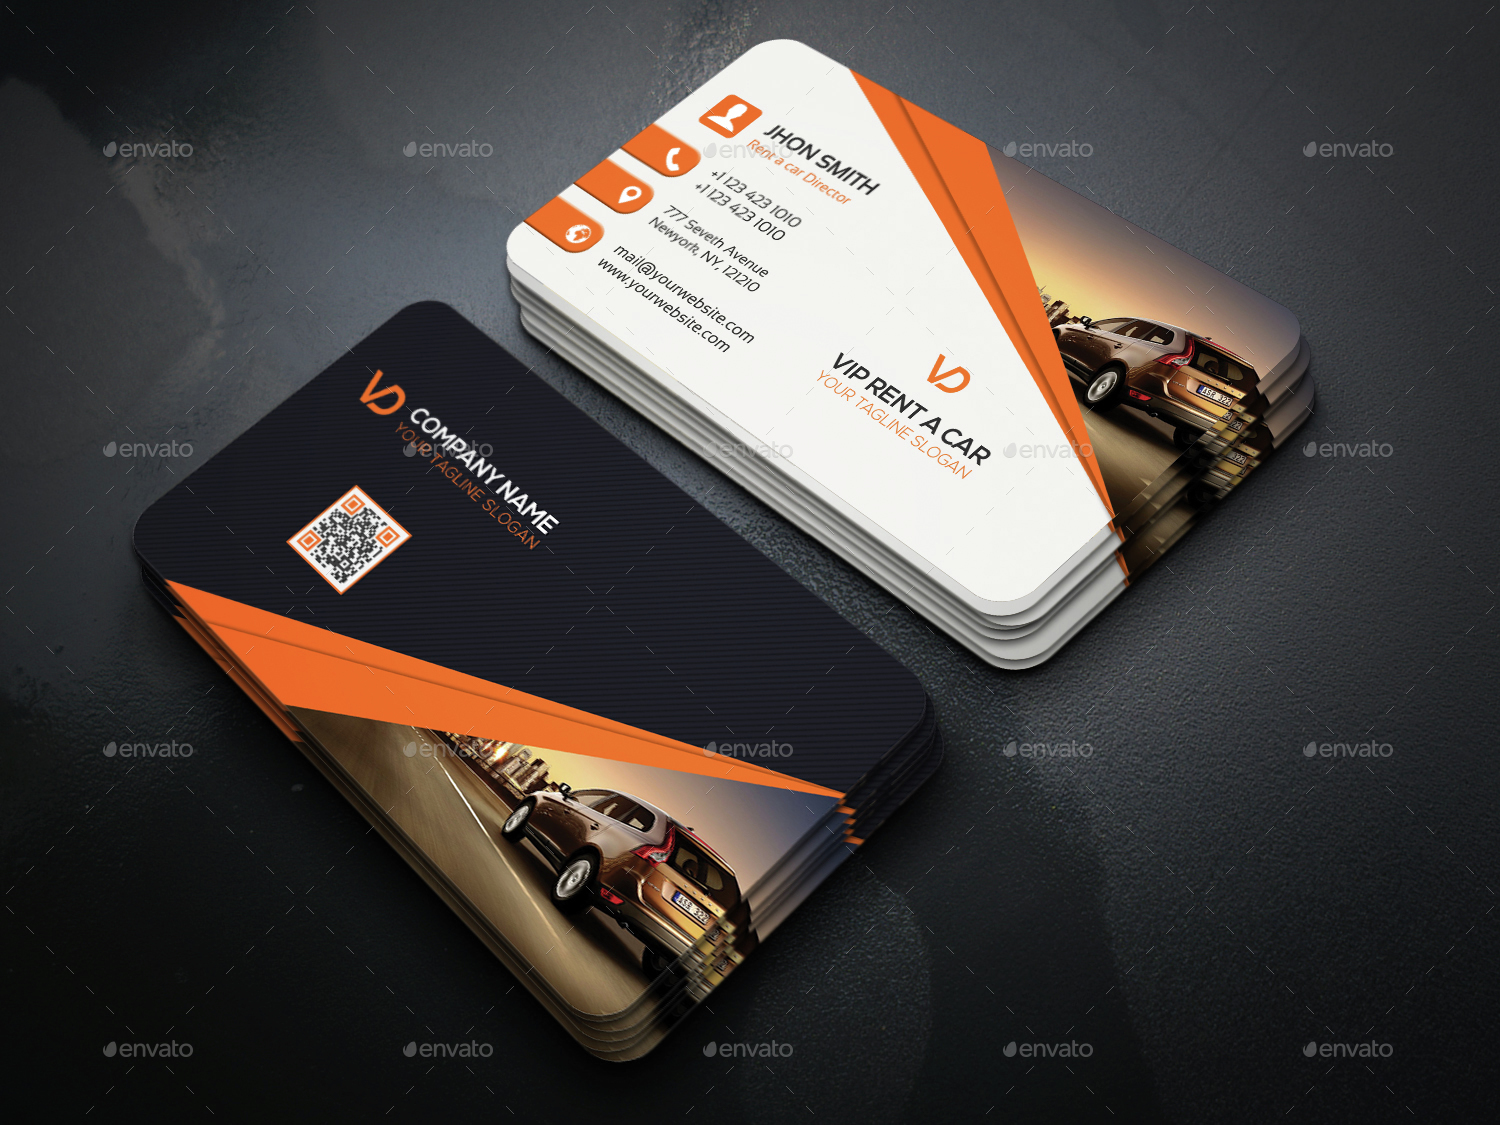 Business card car psd images card design and card template business card car psd images card design and card template business card car psd image collections reheart Gallery